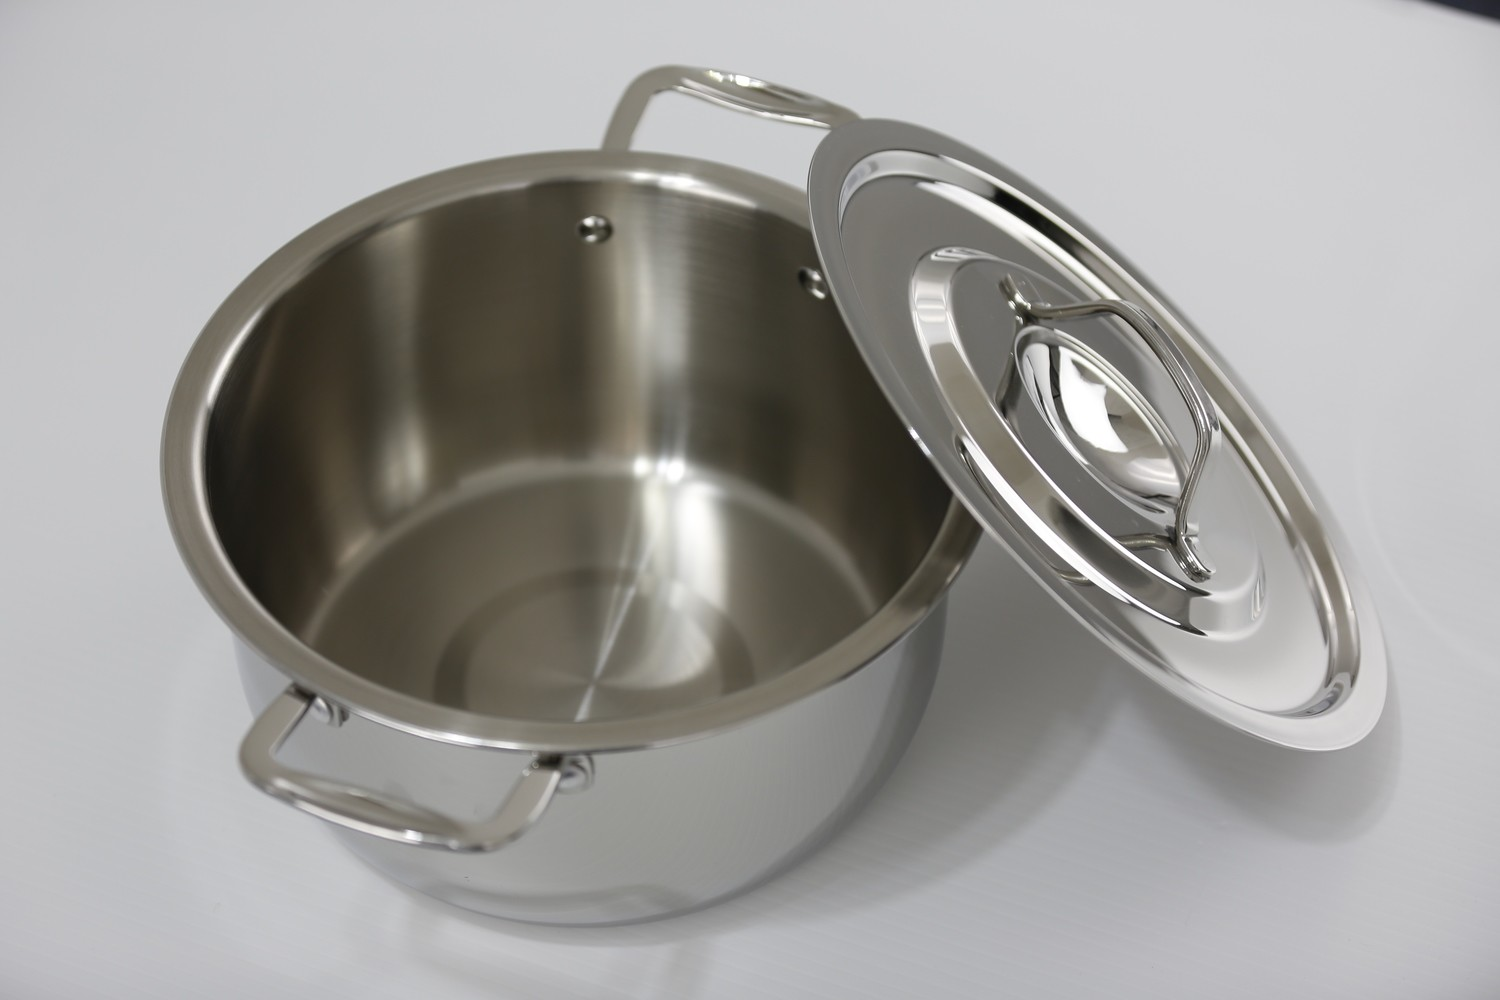 SS1 - 7.61 Qt. Stainless Steel Sauce Pot with Cover